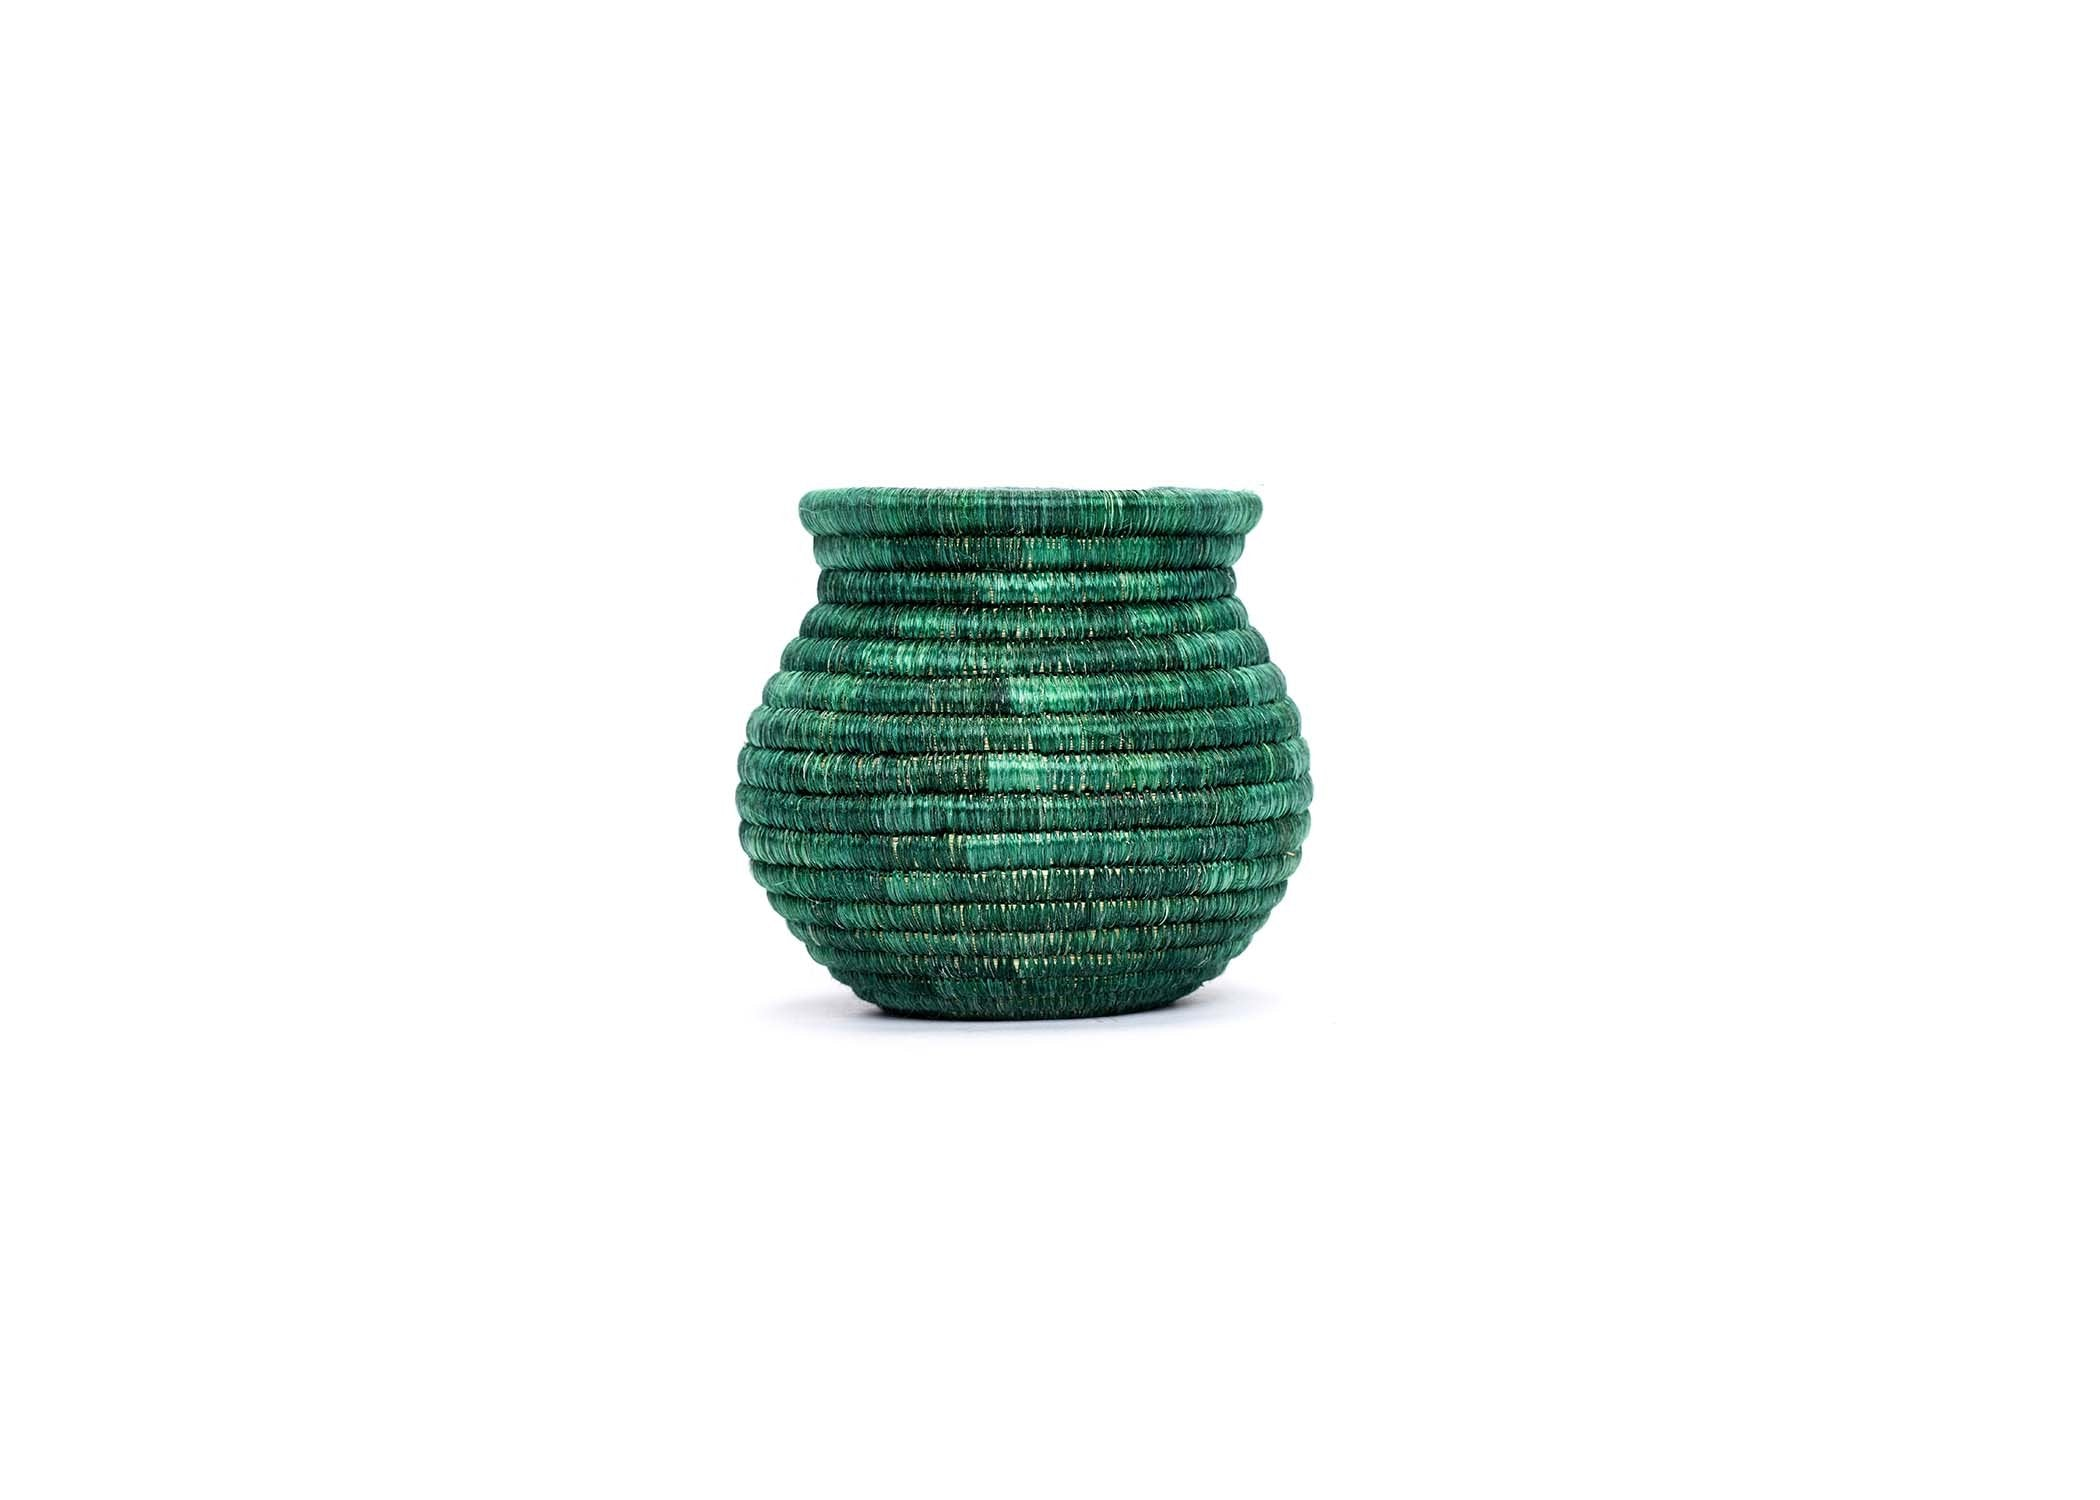 Ivy Atelier Vase 04 - KAZI - Artisan made high quality home decor and wall art